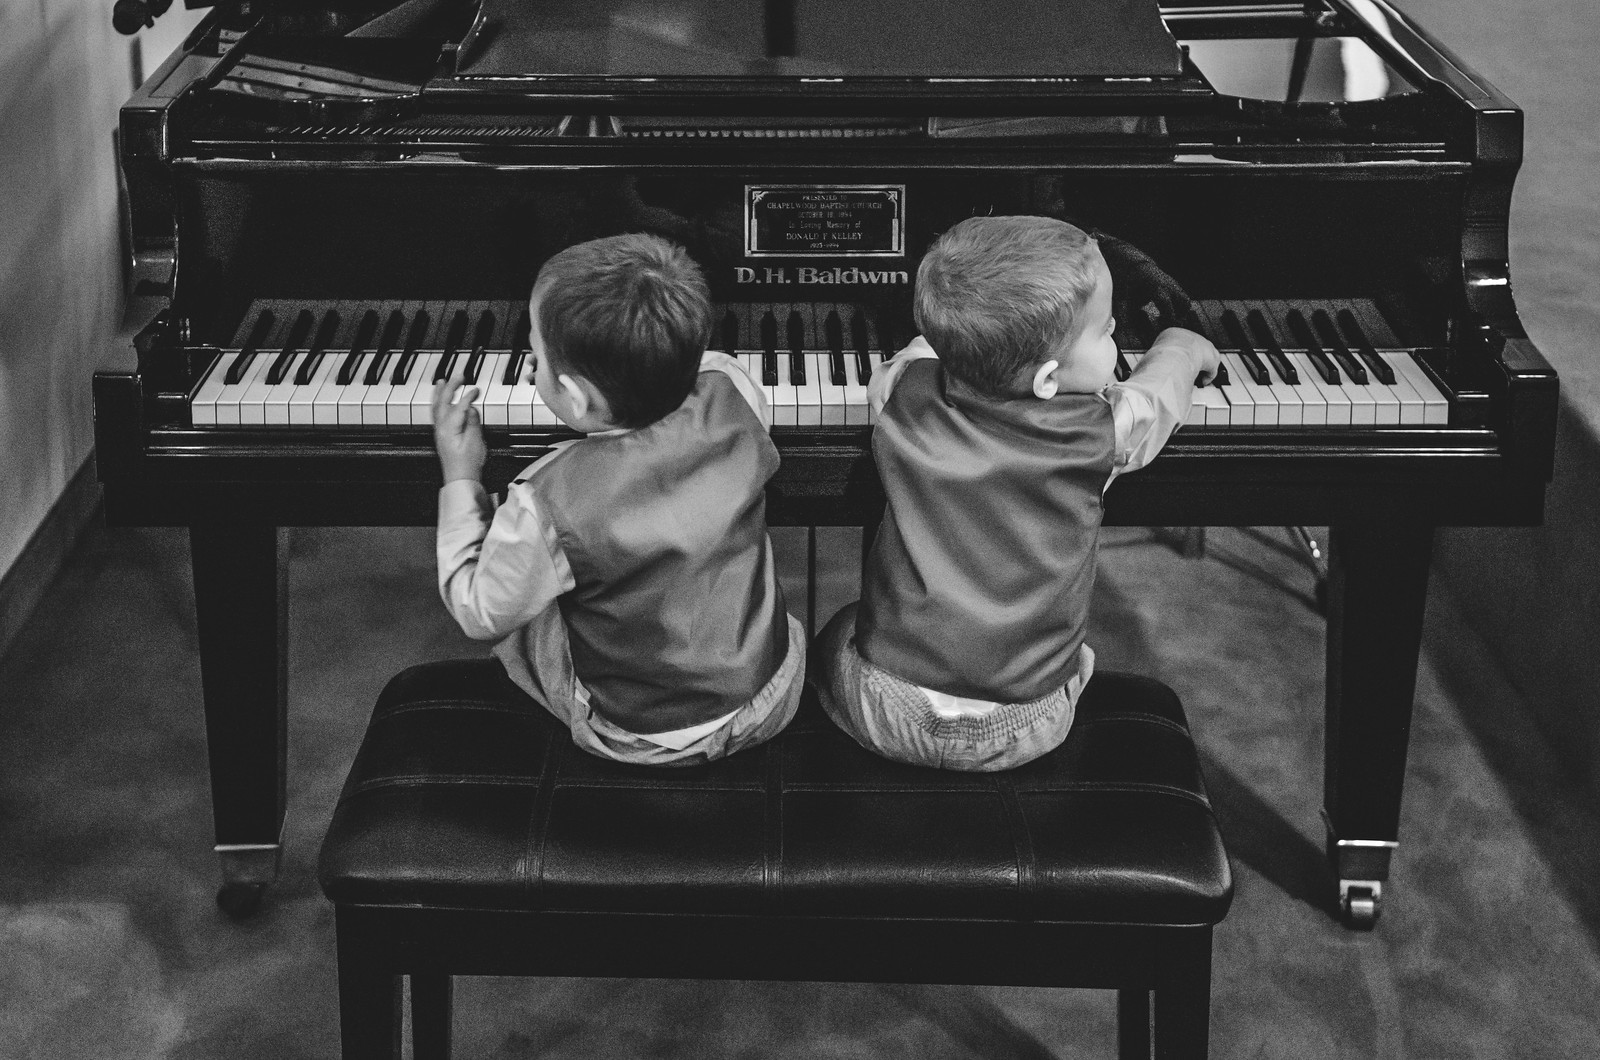 Boys at the Piano